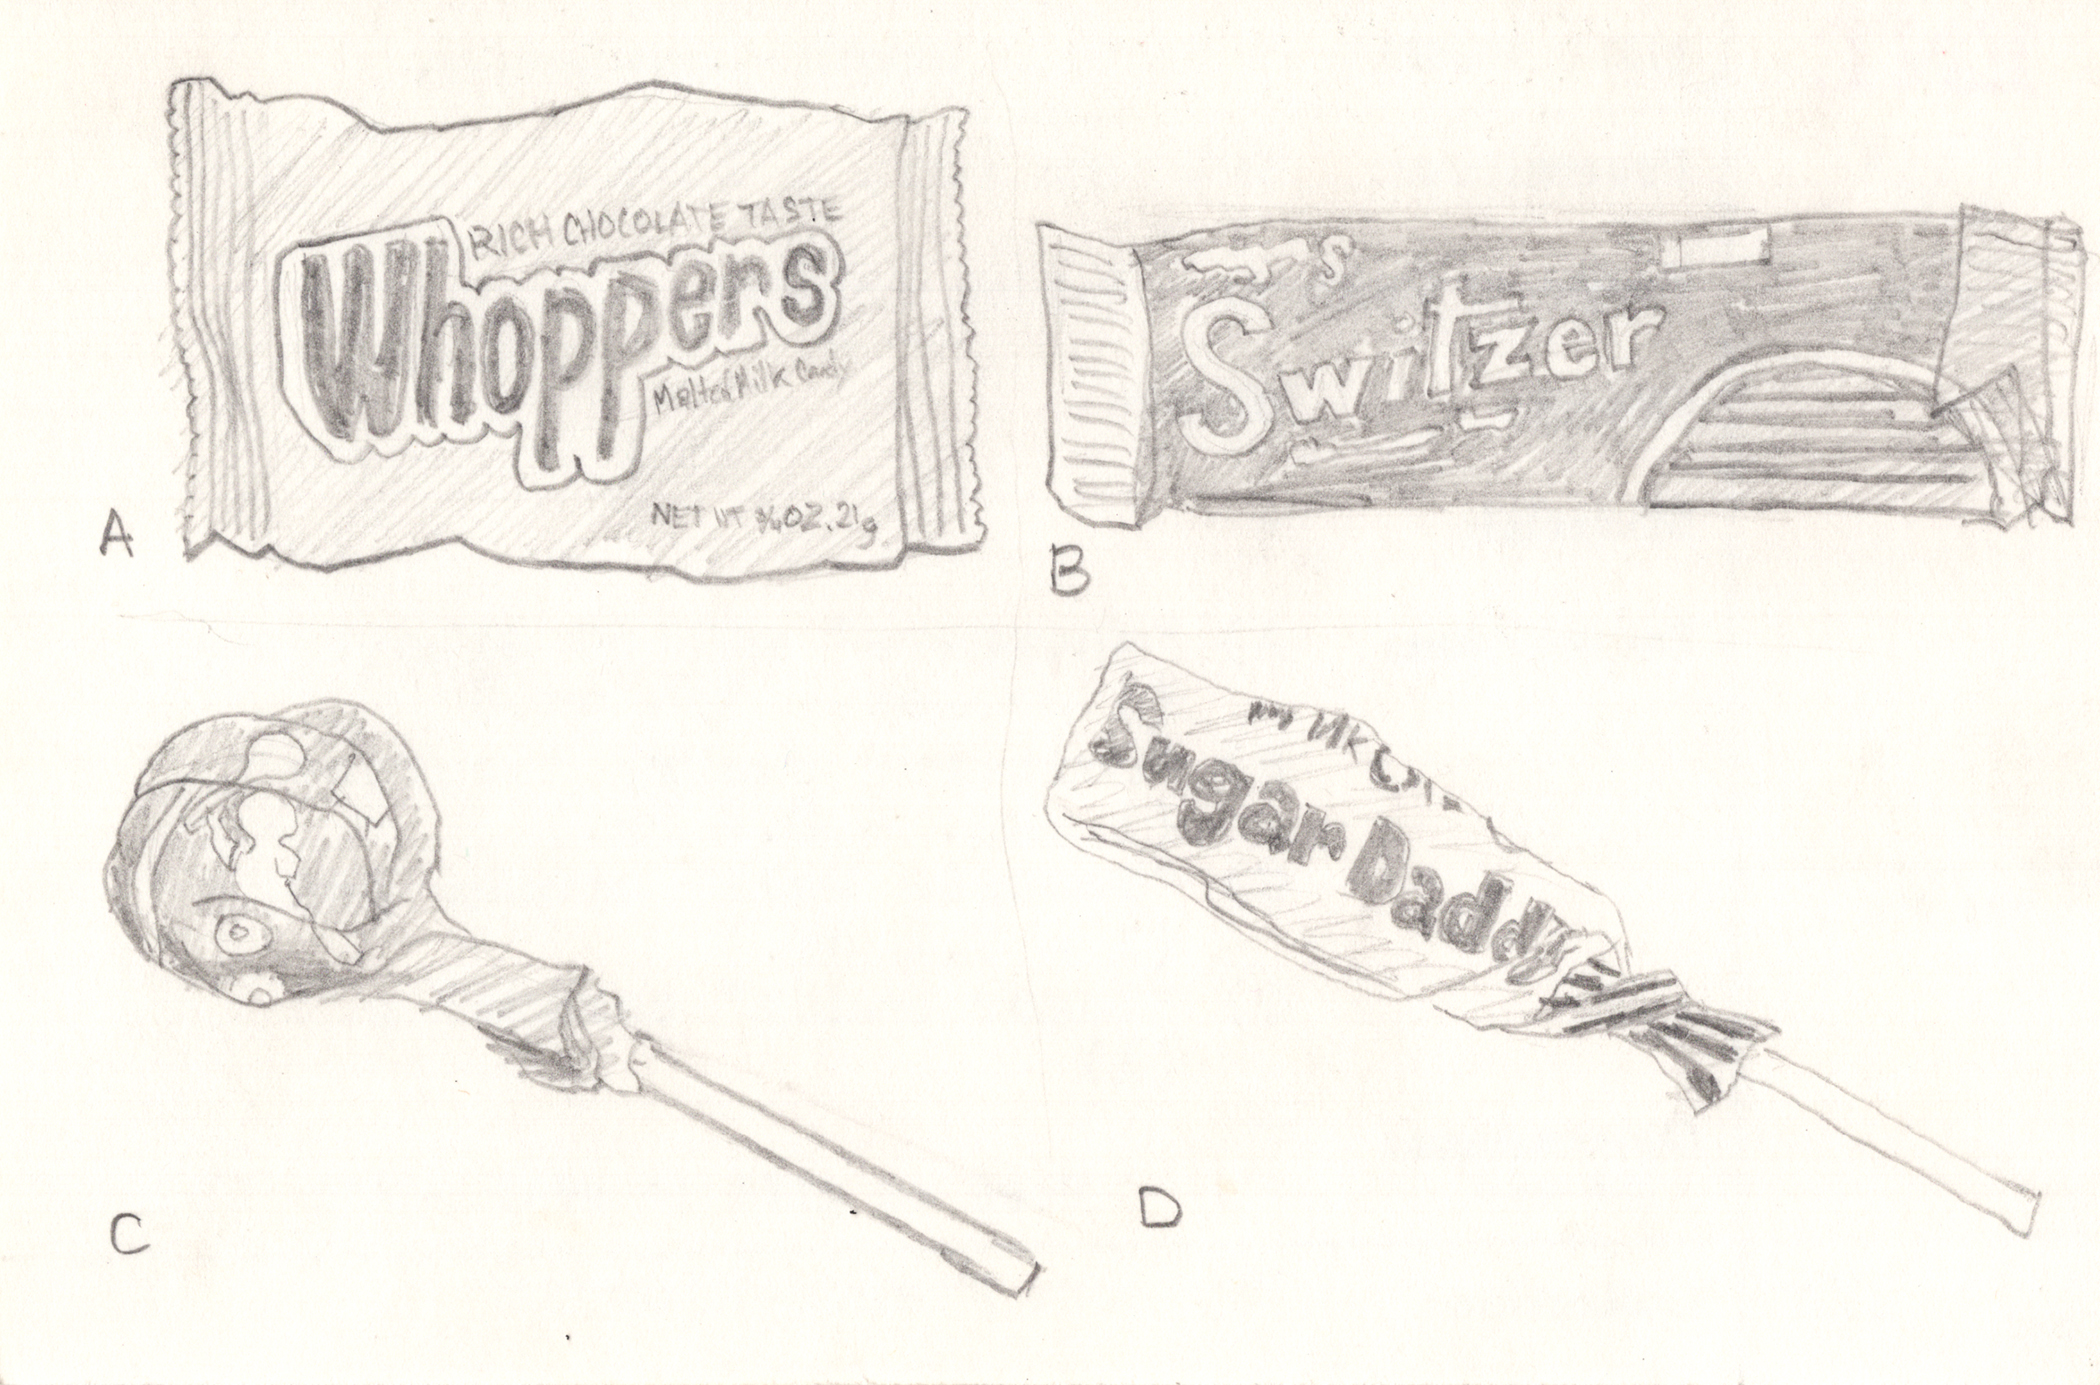 A pencil linedrawing of four kinds of candy